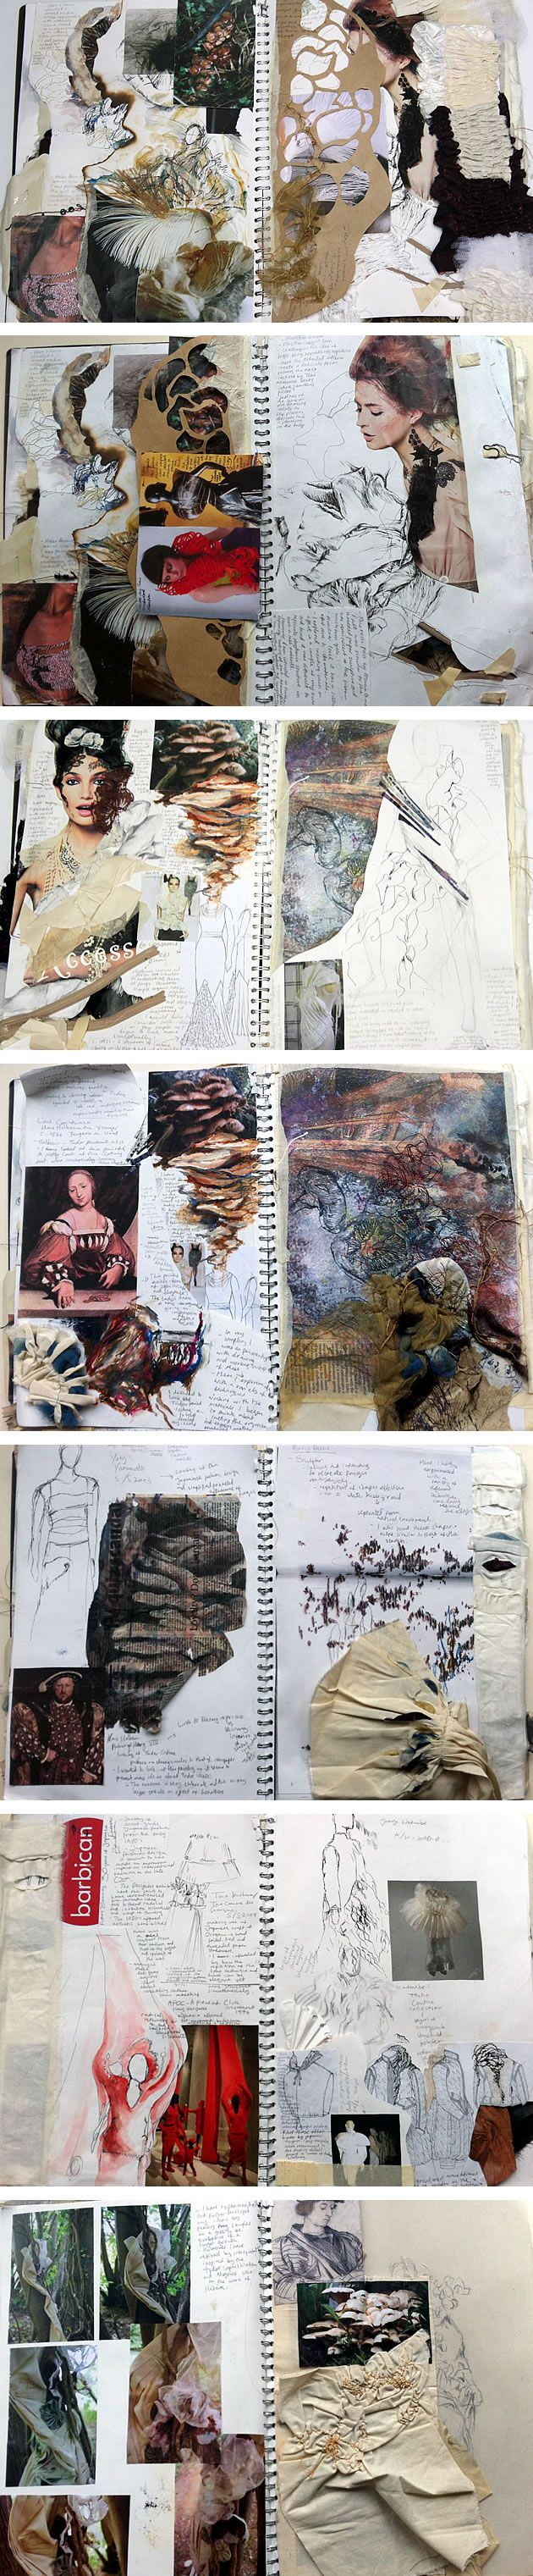 Fashion Textiles sketchbook